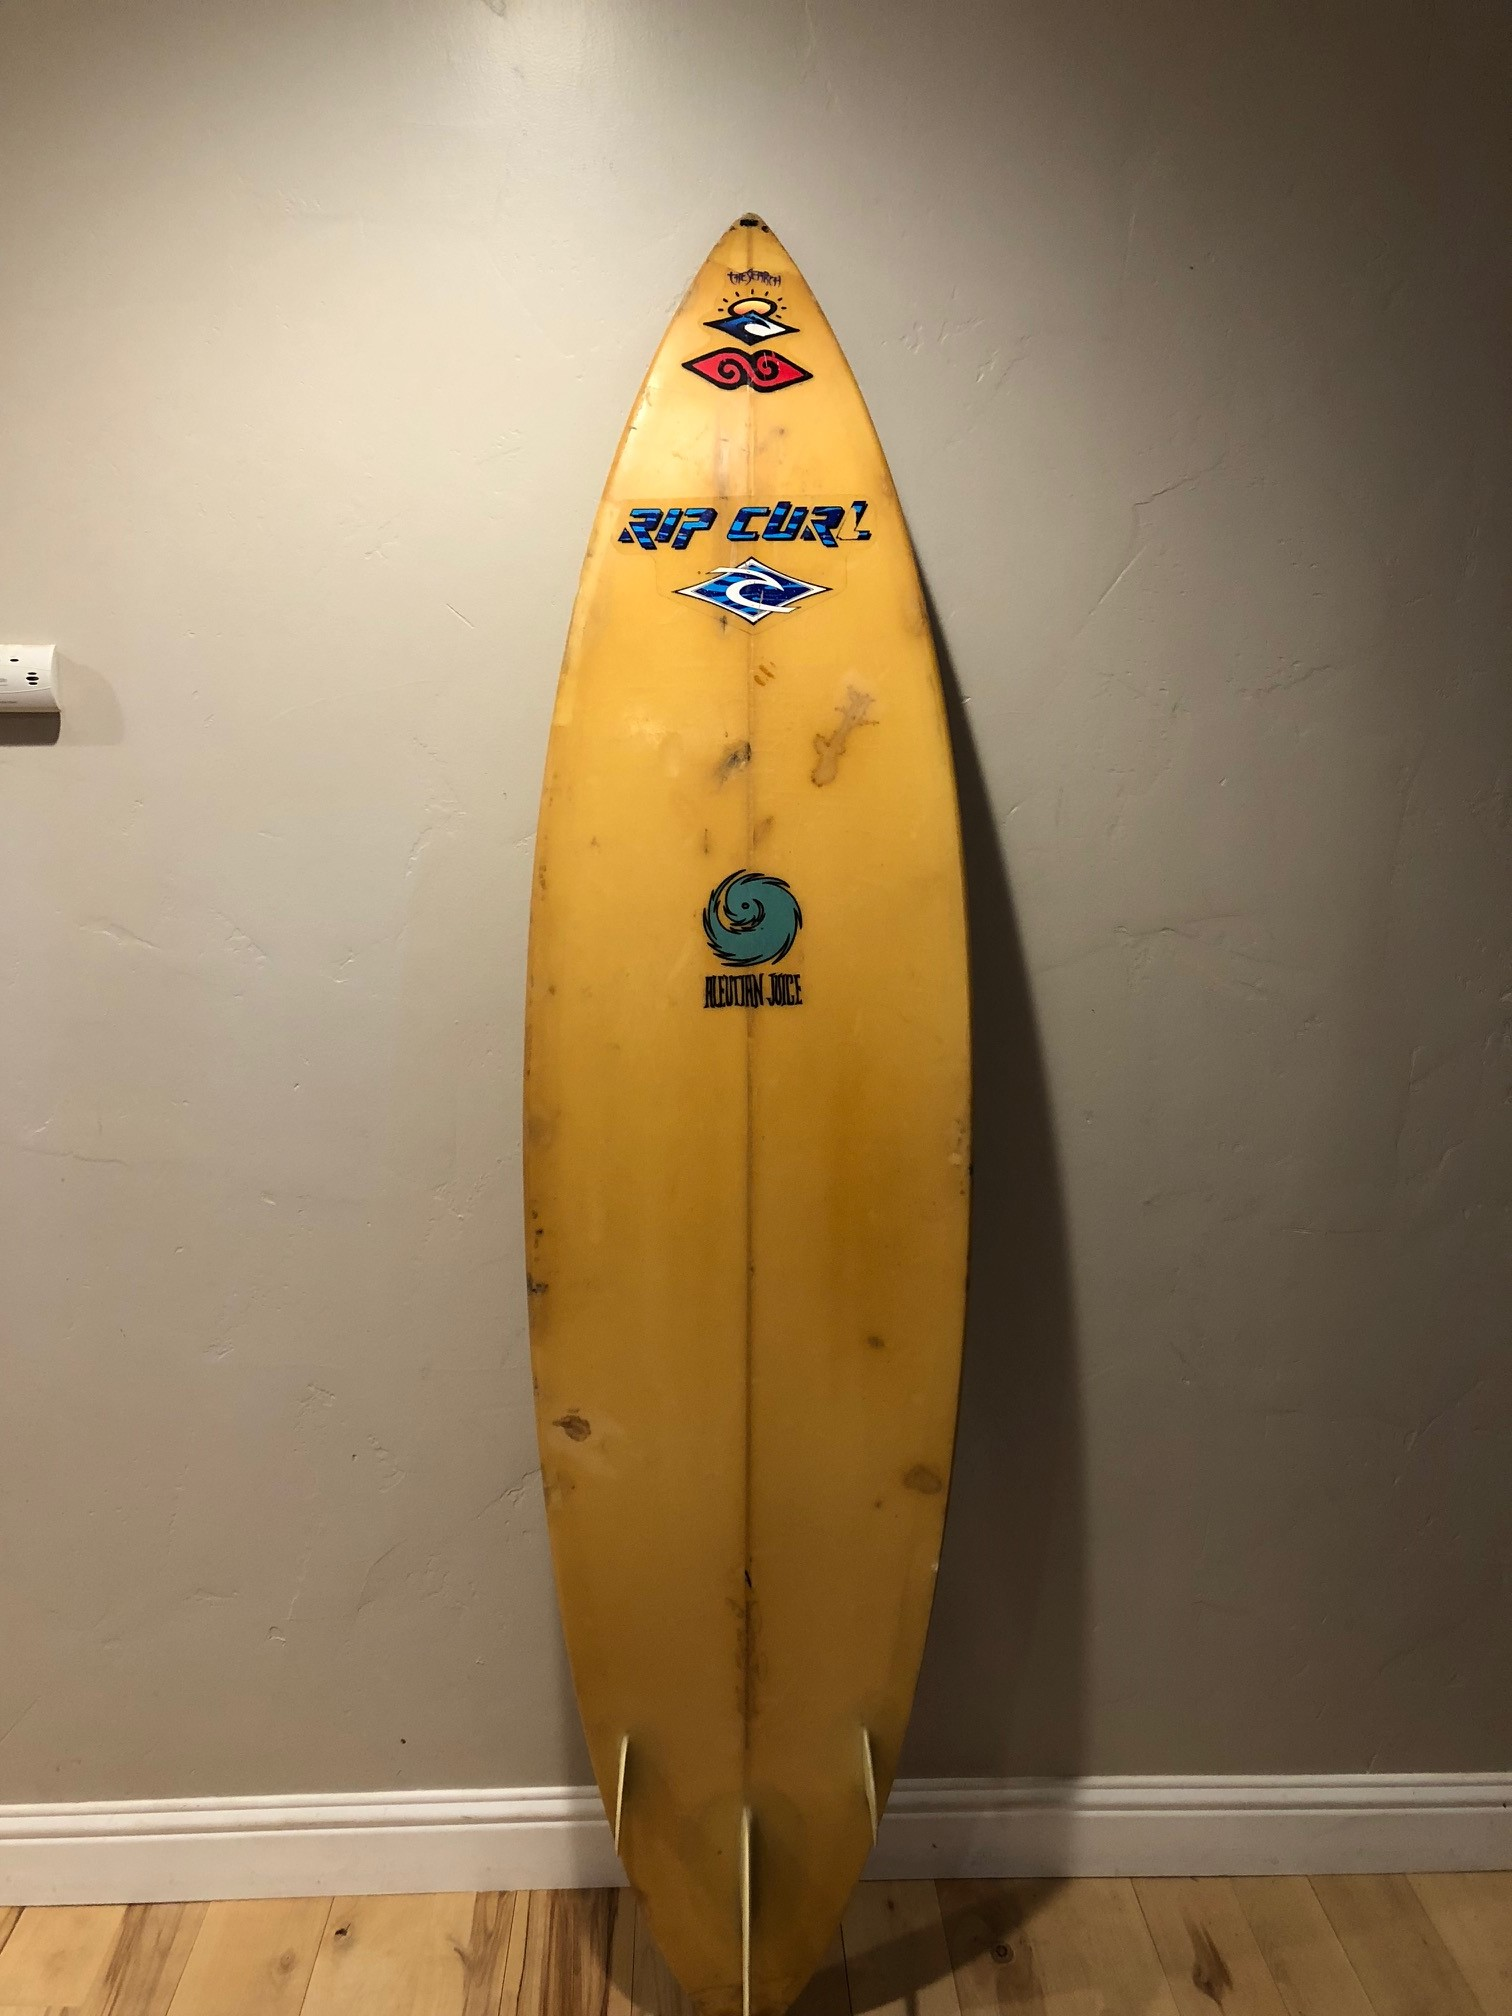 "1989 6'9"" Tom Curren personal board shaped by Dave Parmenter"